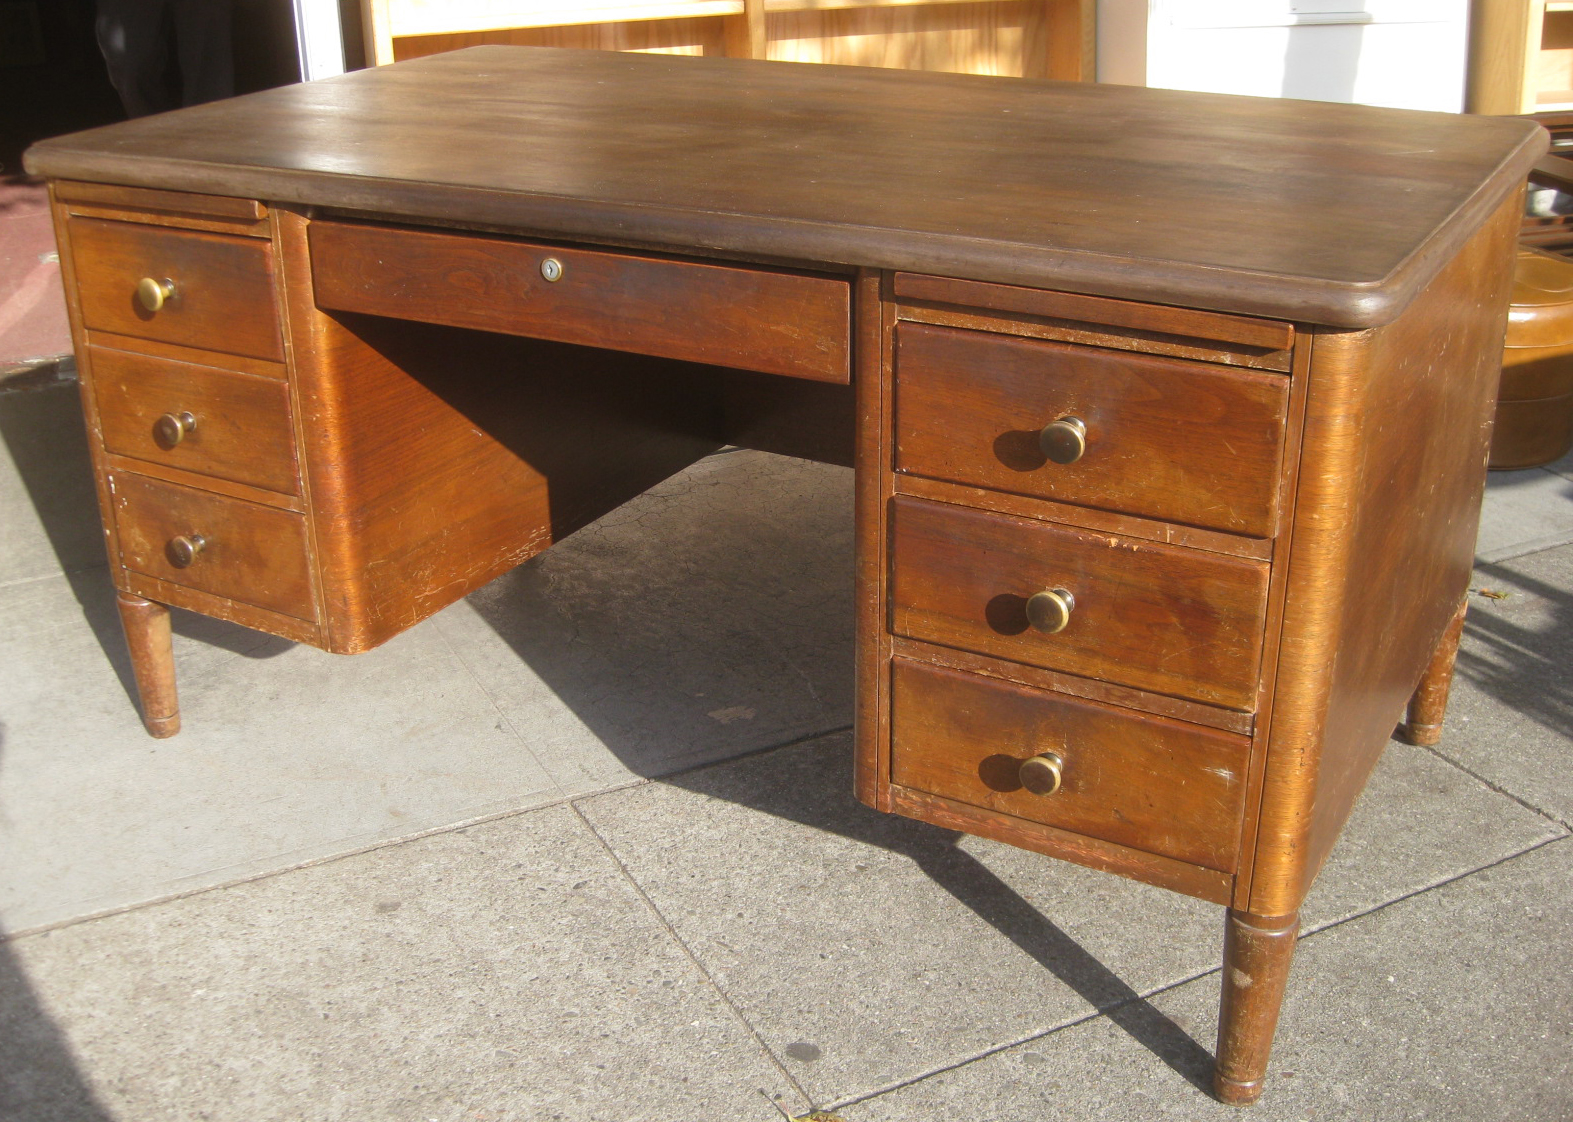 SOLD - Vintage Teacher's Desk - $90 - UHURU FURNITURE & COLLECTIBLES: SOLD - Vintage Teacher's Desk - $90